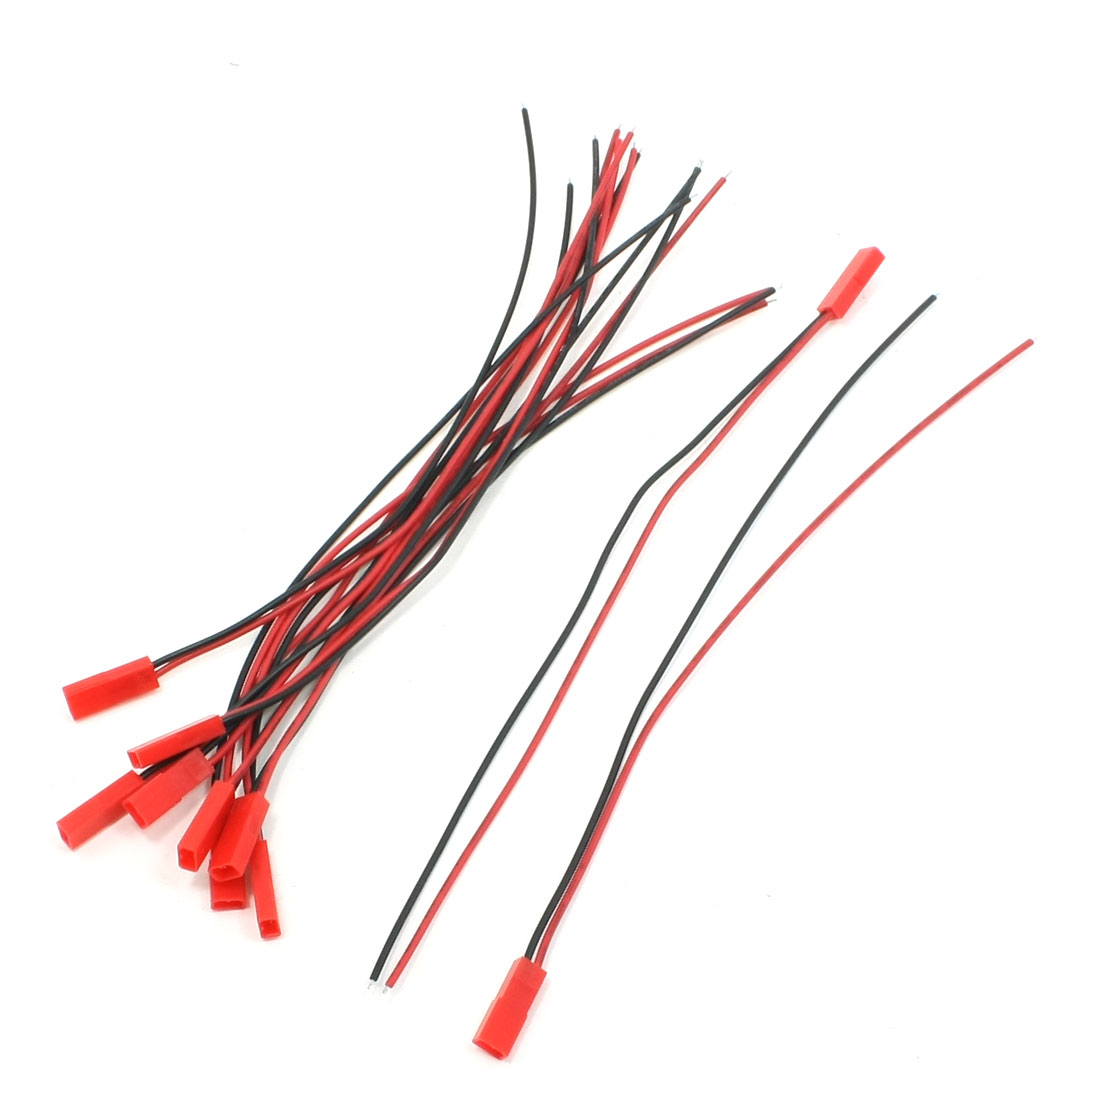 10Pcs JST Female Connector 22AWG Wire 200mm for RC Model Plane